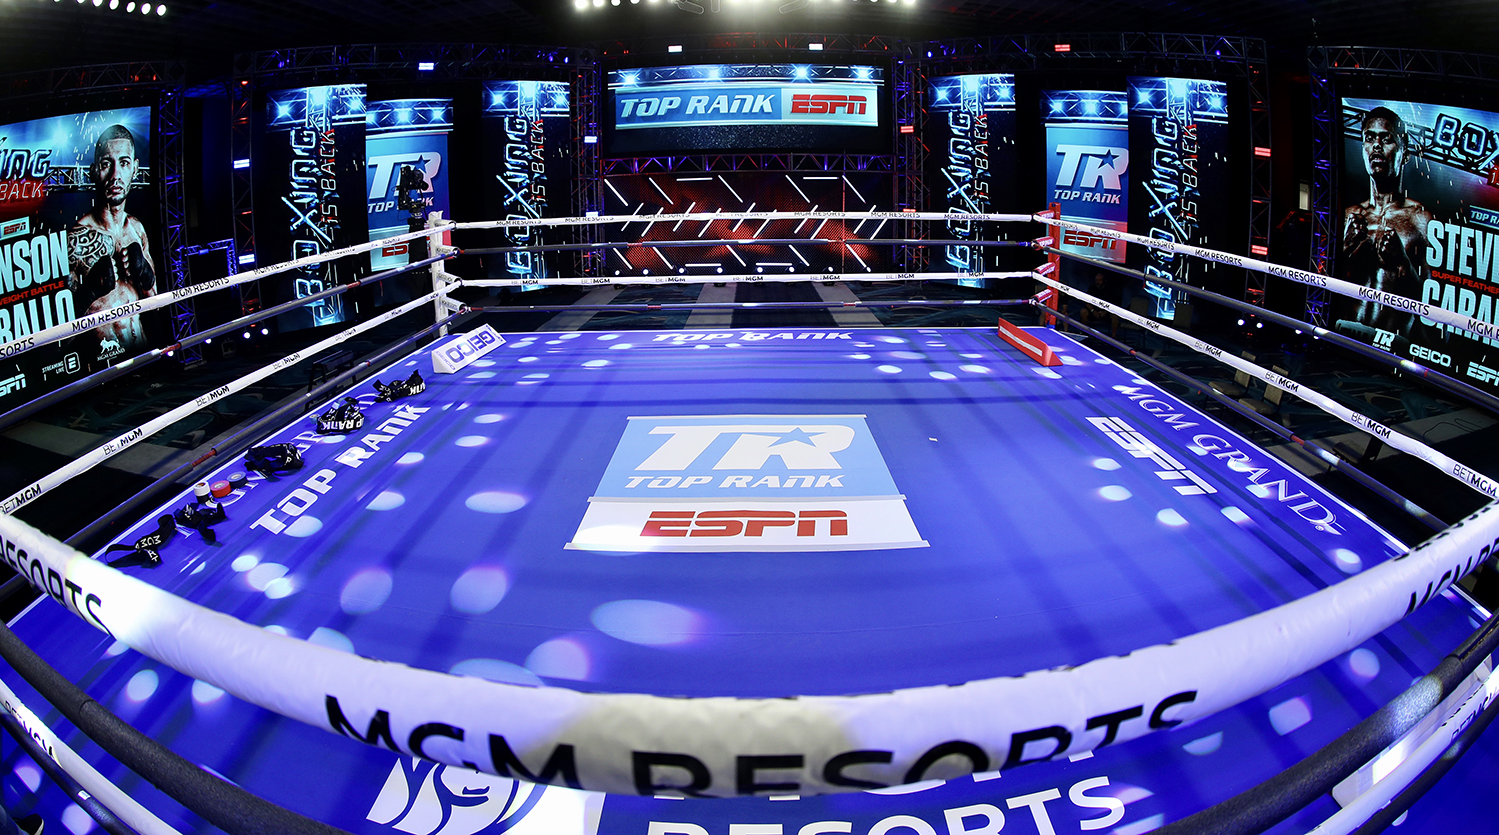 StarTimes Secures Top Rank Boxing, and Motor Racing Broadcast Rights